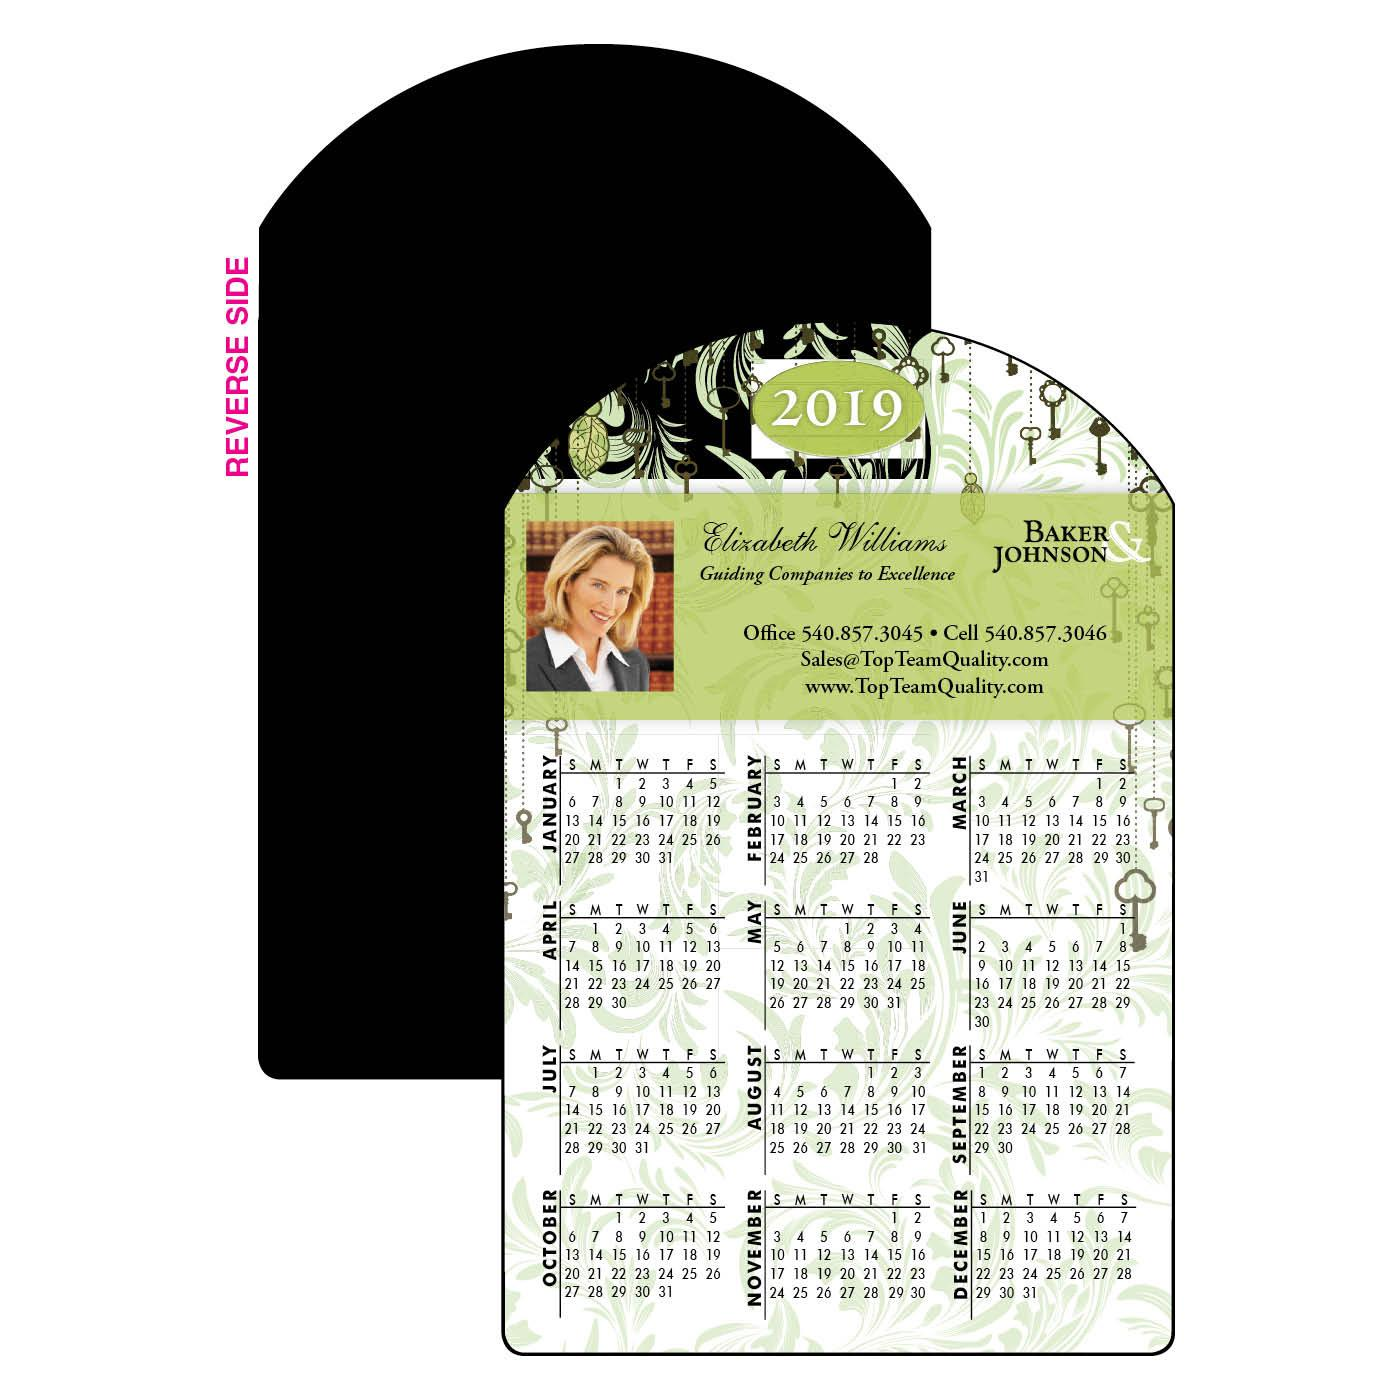 Calendar Magnet with Key Design